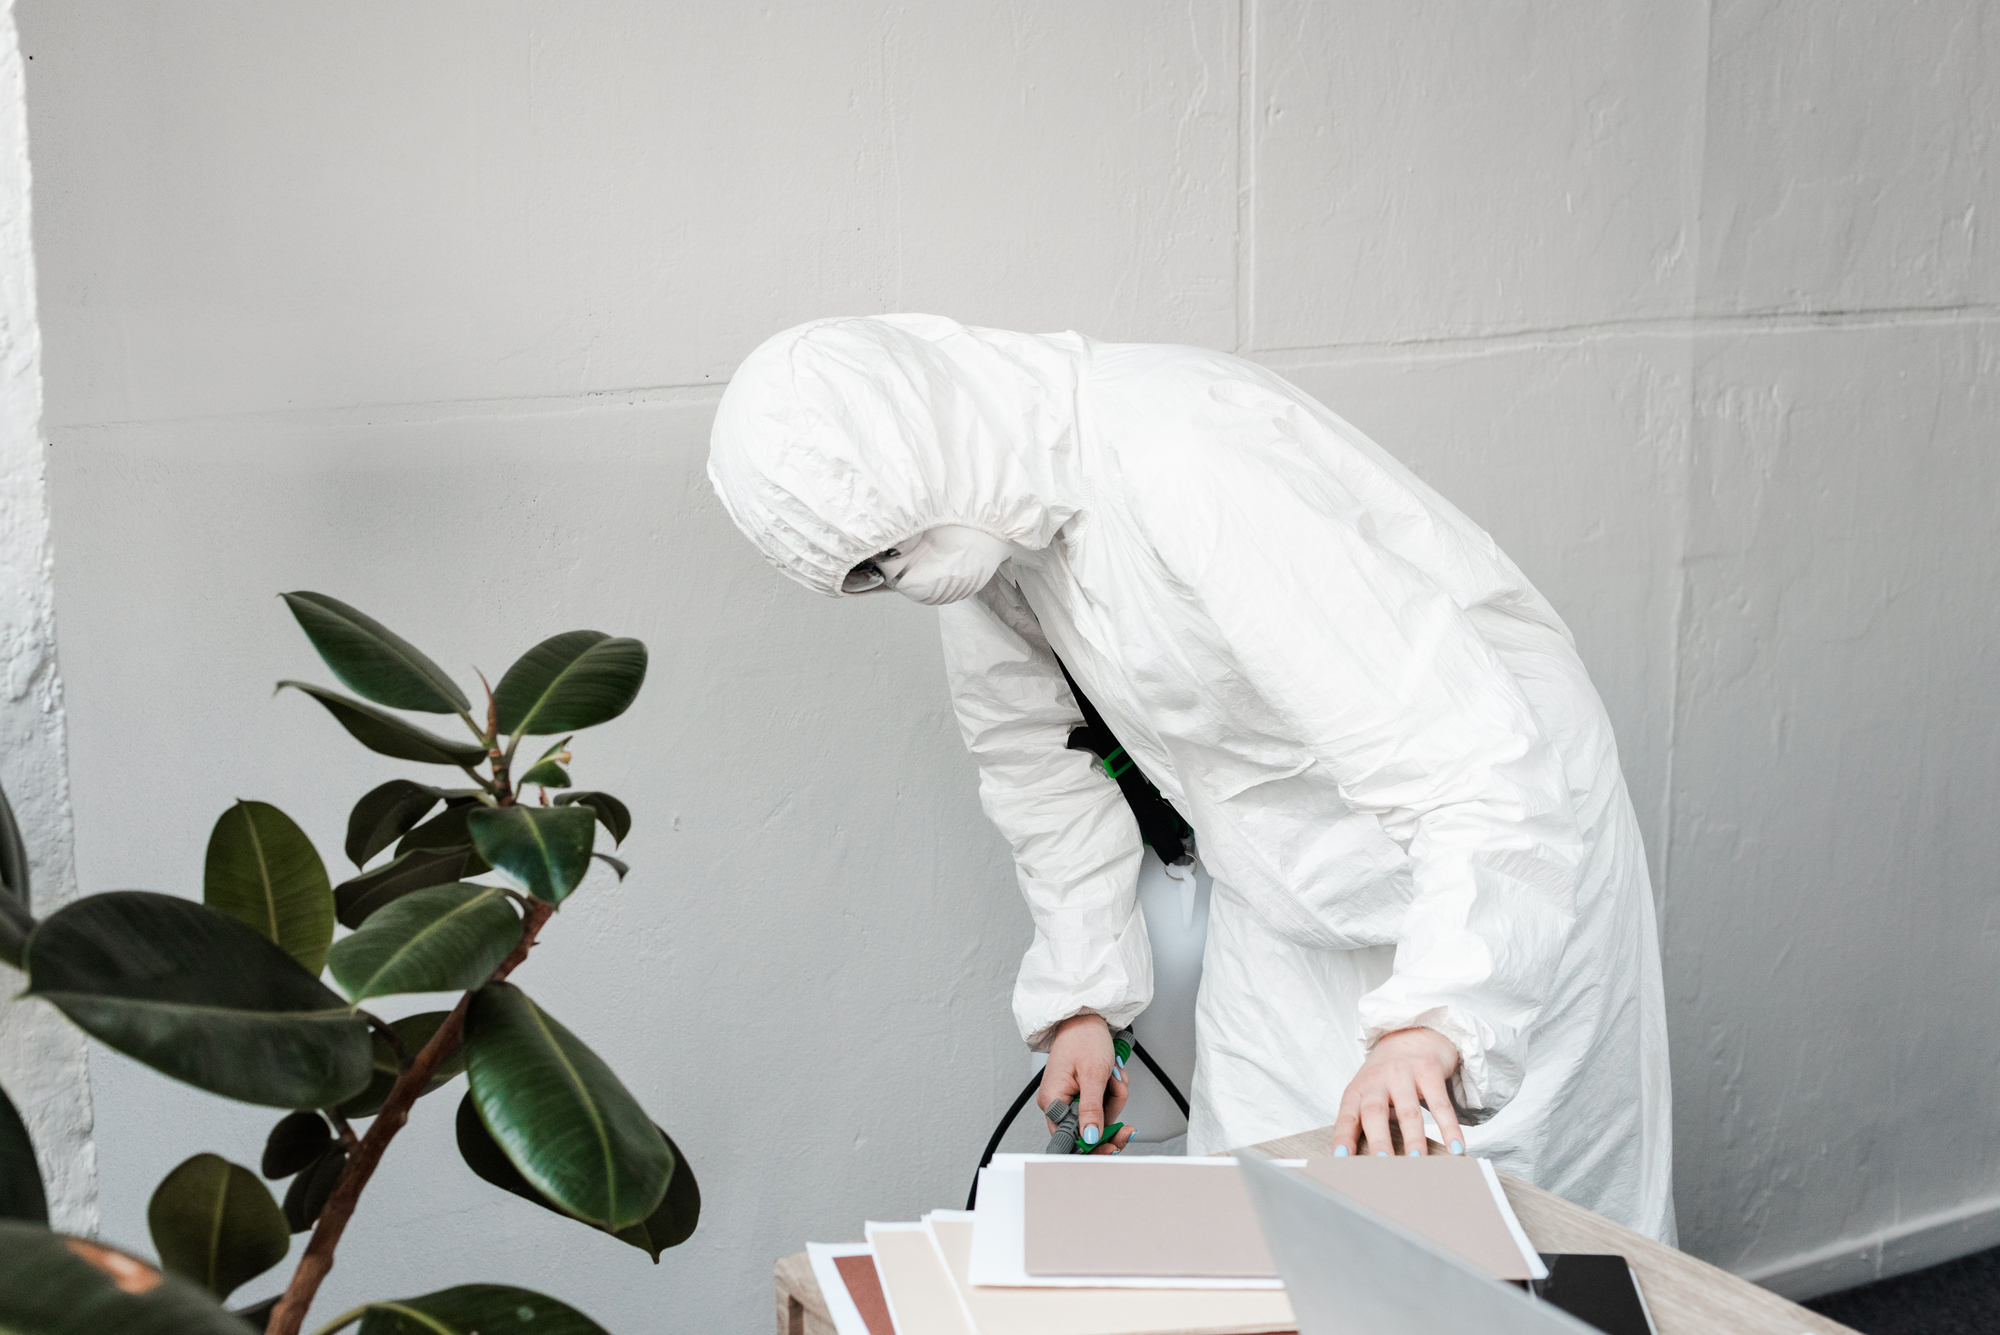 Man in Hazmat Suit Disinfecting Office Showing The Benefits of Electrostatic Disinfecting